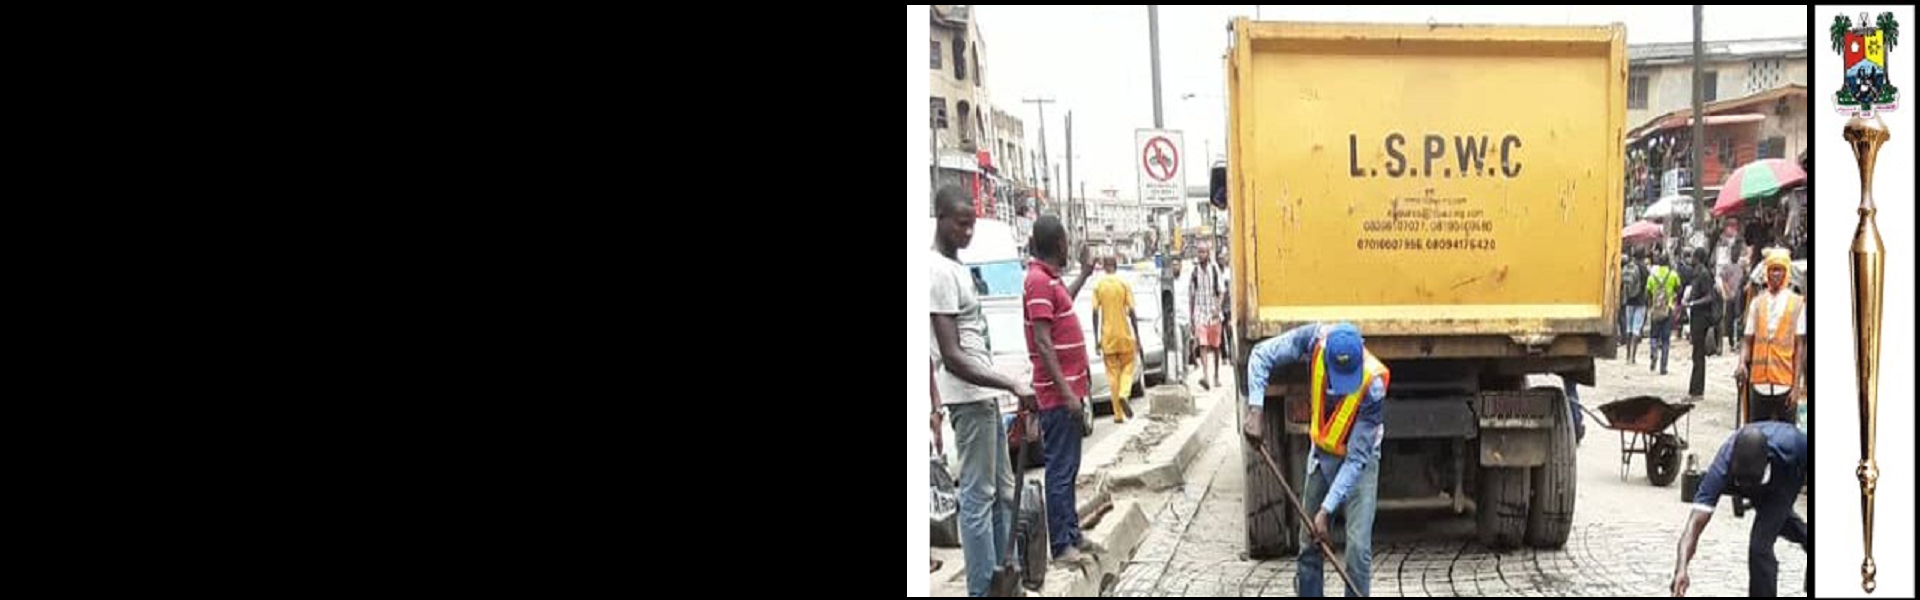 LAGOS LAWMAKERS TASK PUBLIC WORKS CORPORATION, CONTRACTORS ON SCHEDULED ROAD MAINTENANCE